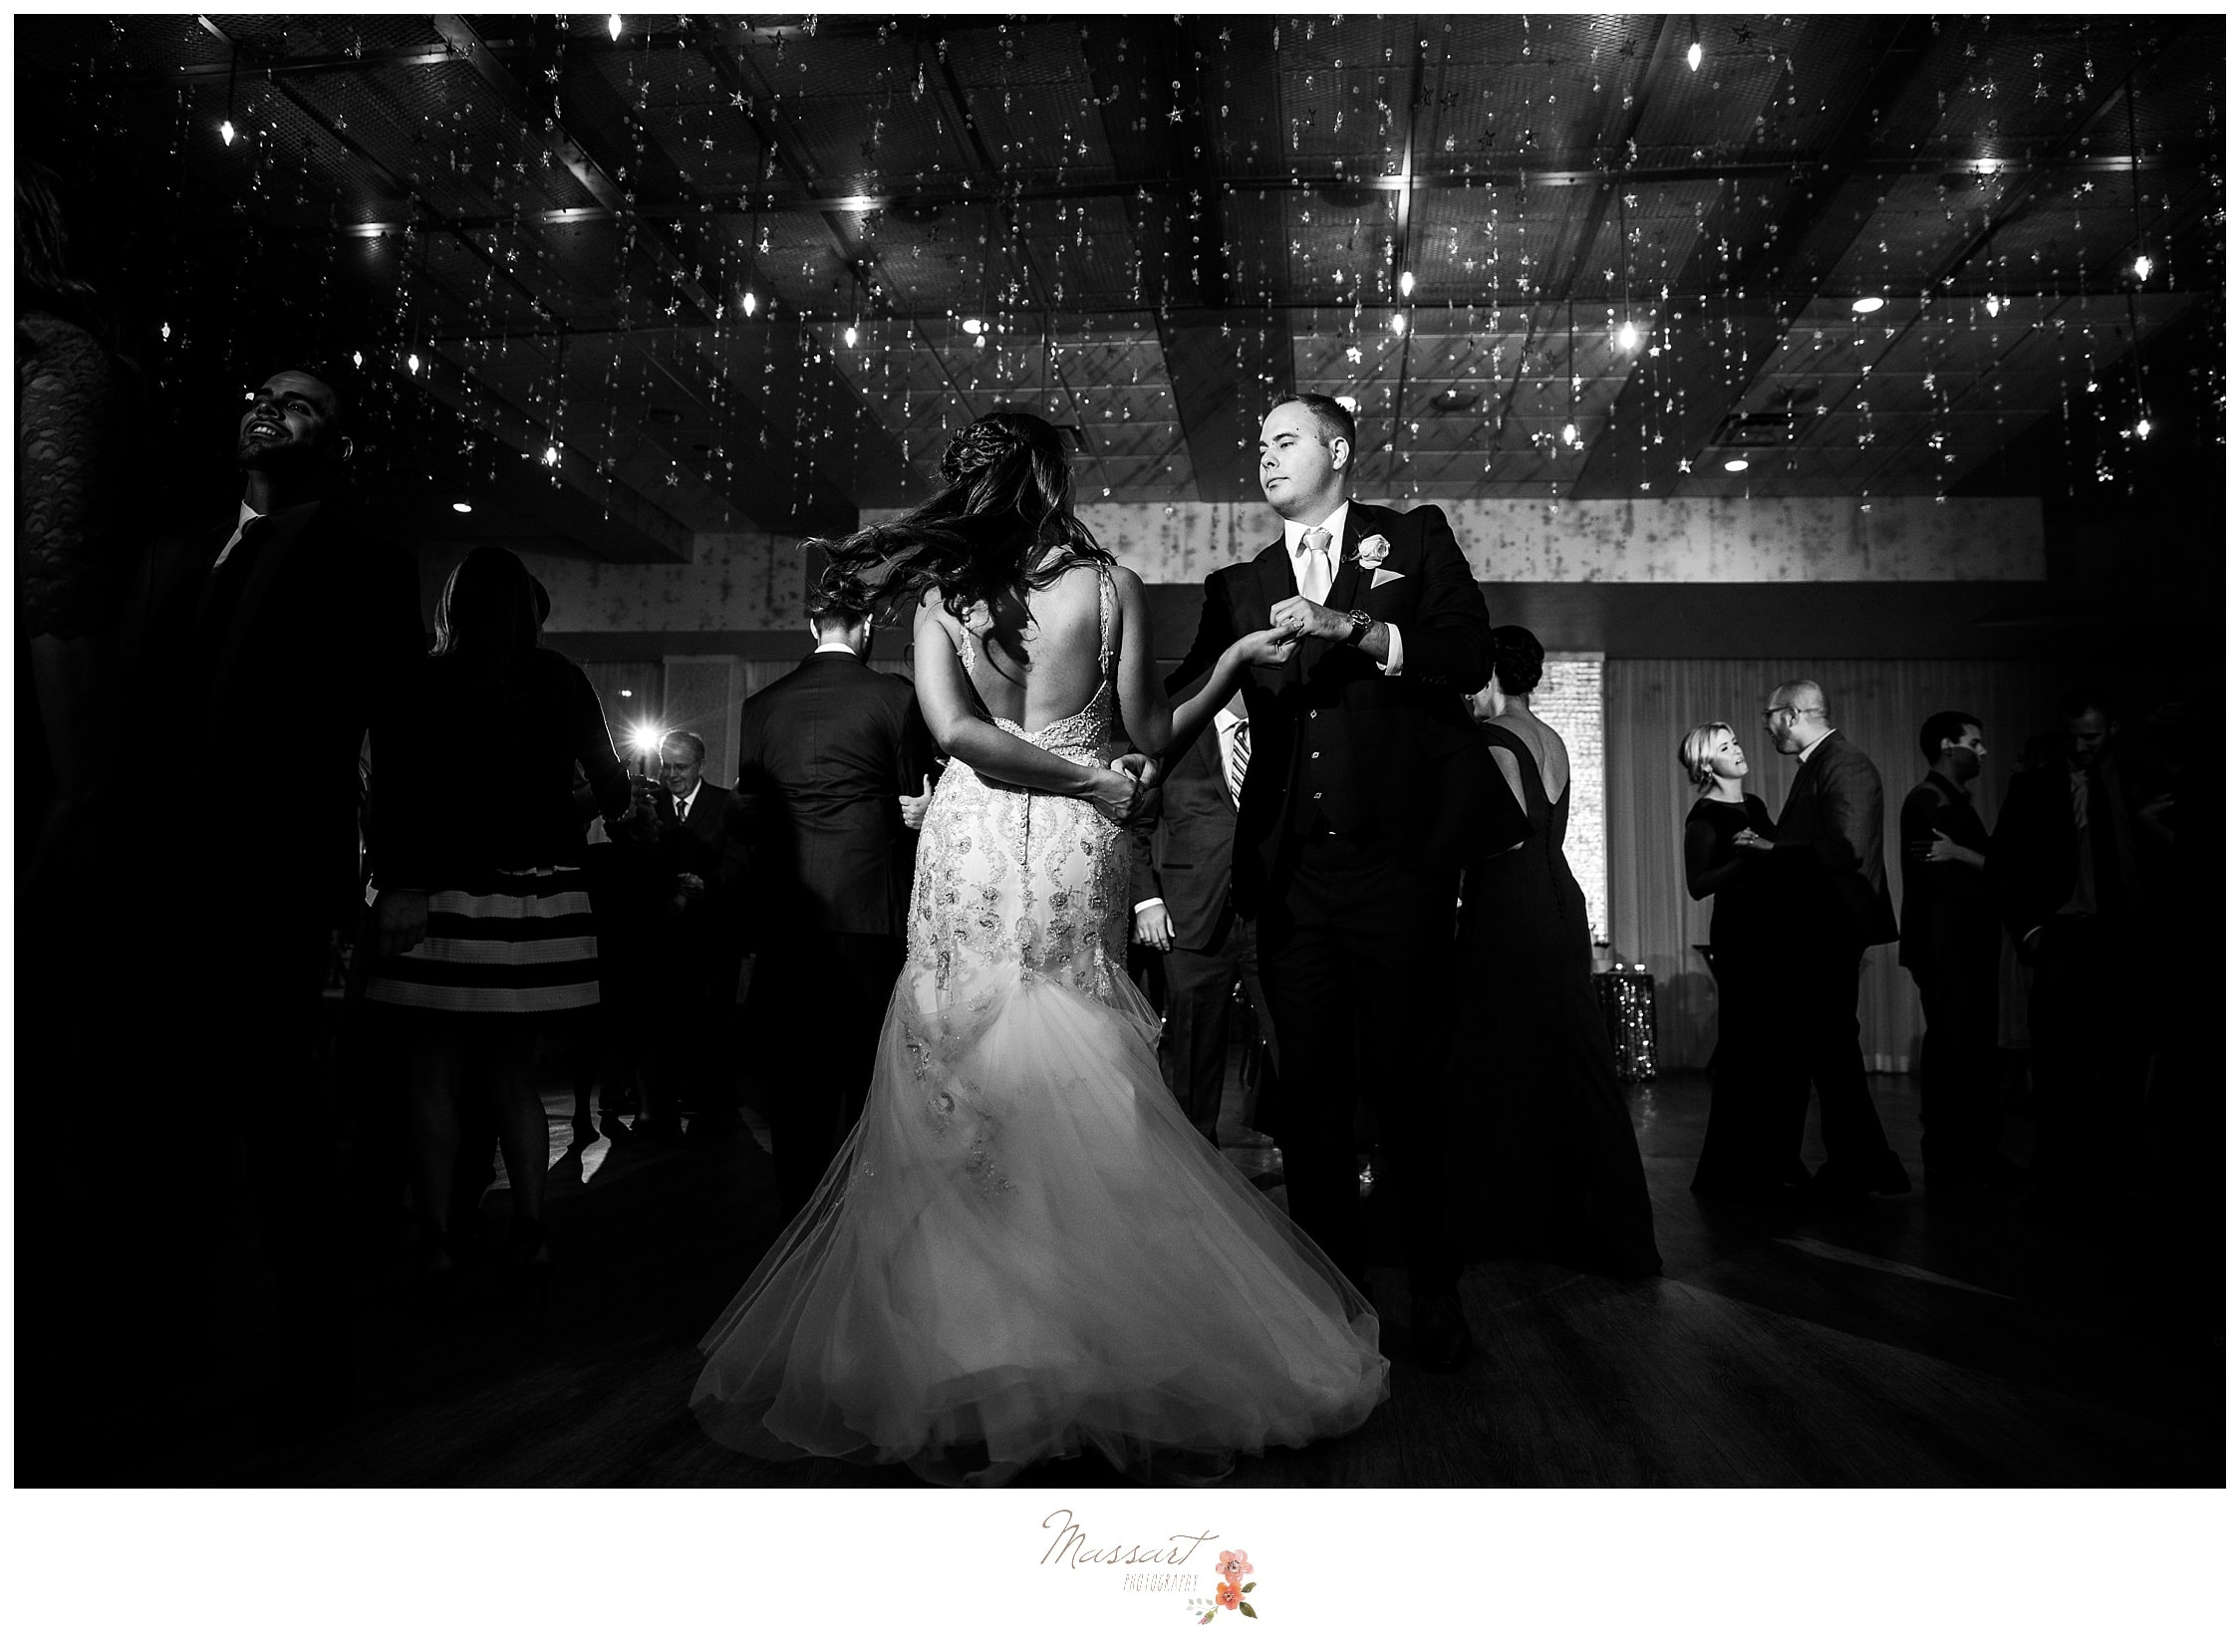 The bride and groom having fun during their first dance as husband and wife photographed by Massart Photography RI